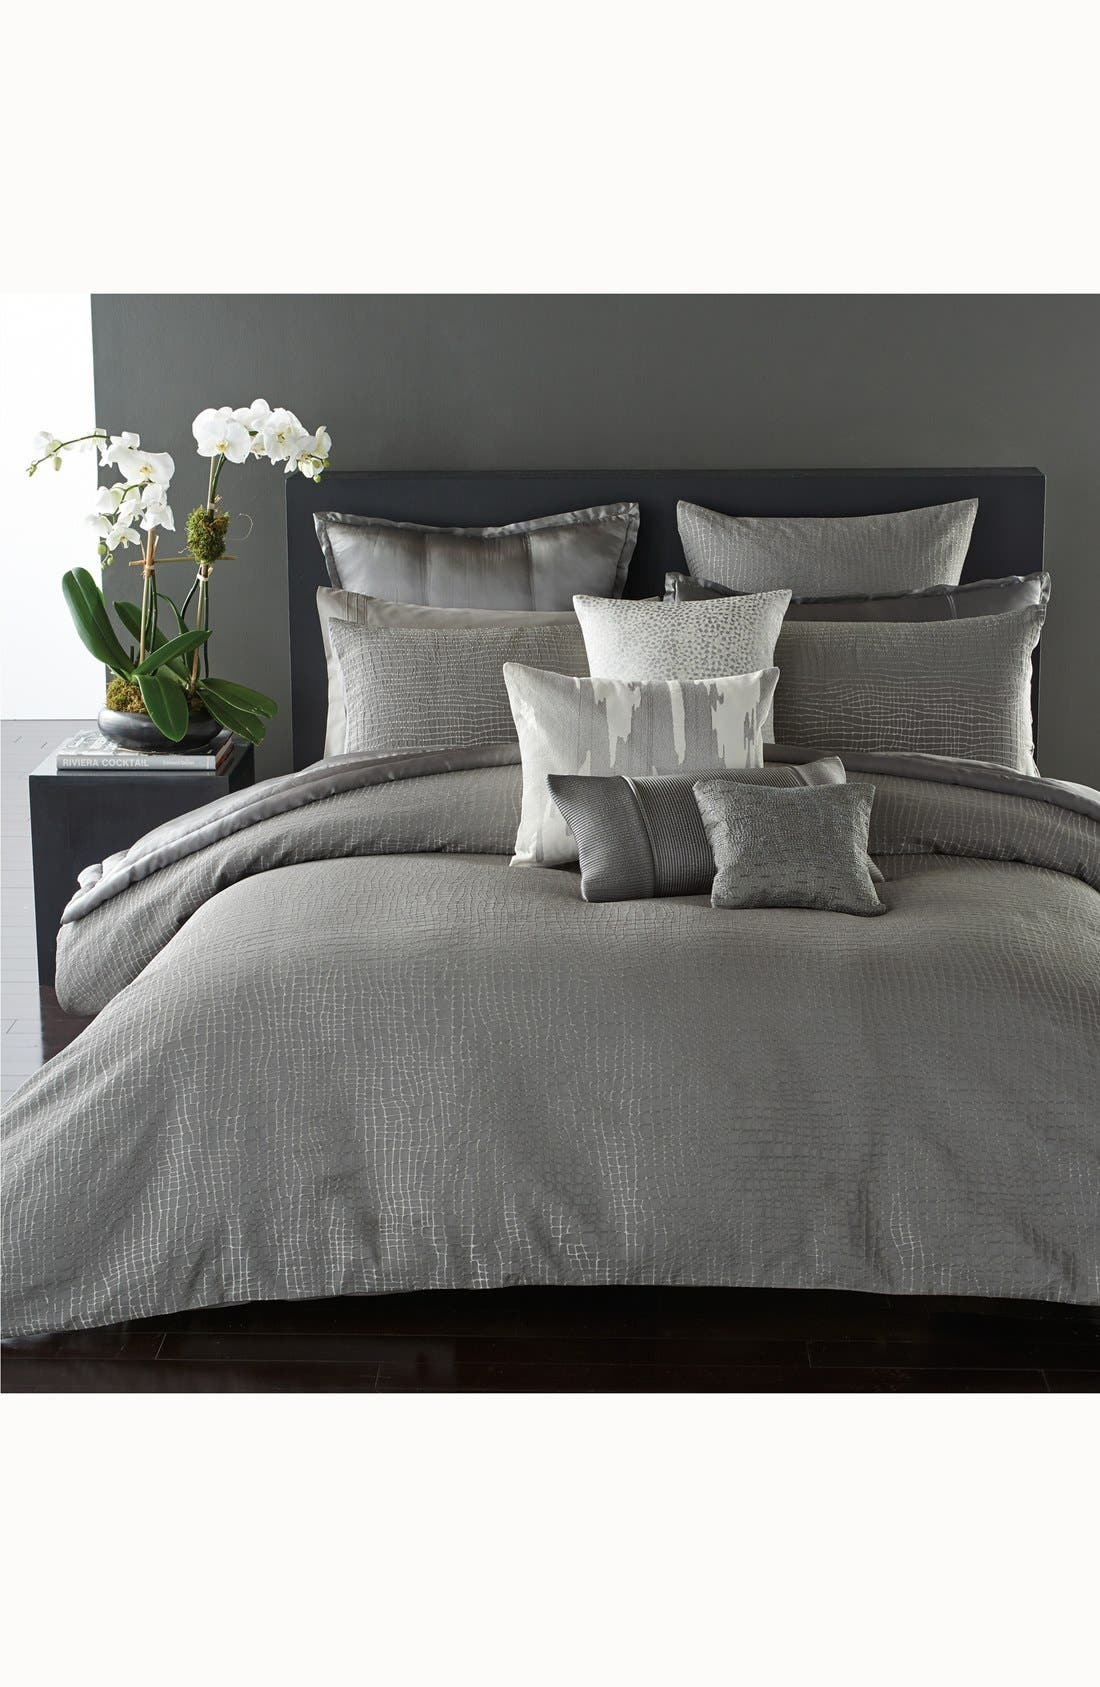 Main Image - Donna Karan Collection 'Surface' Duvet Cover